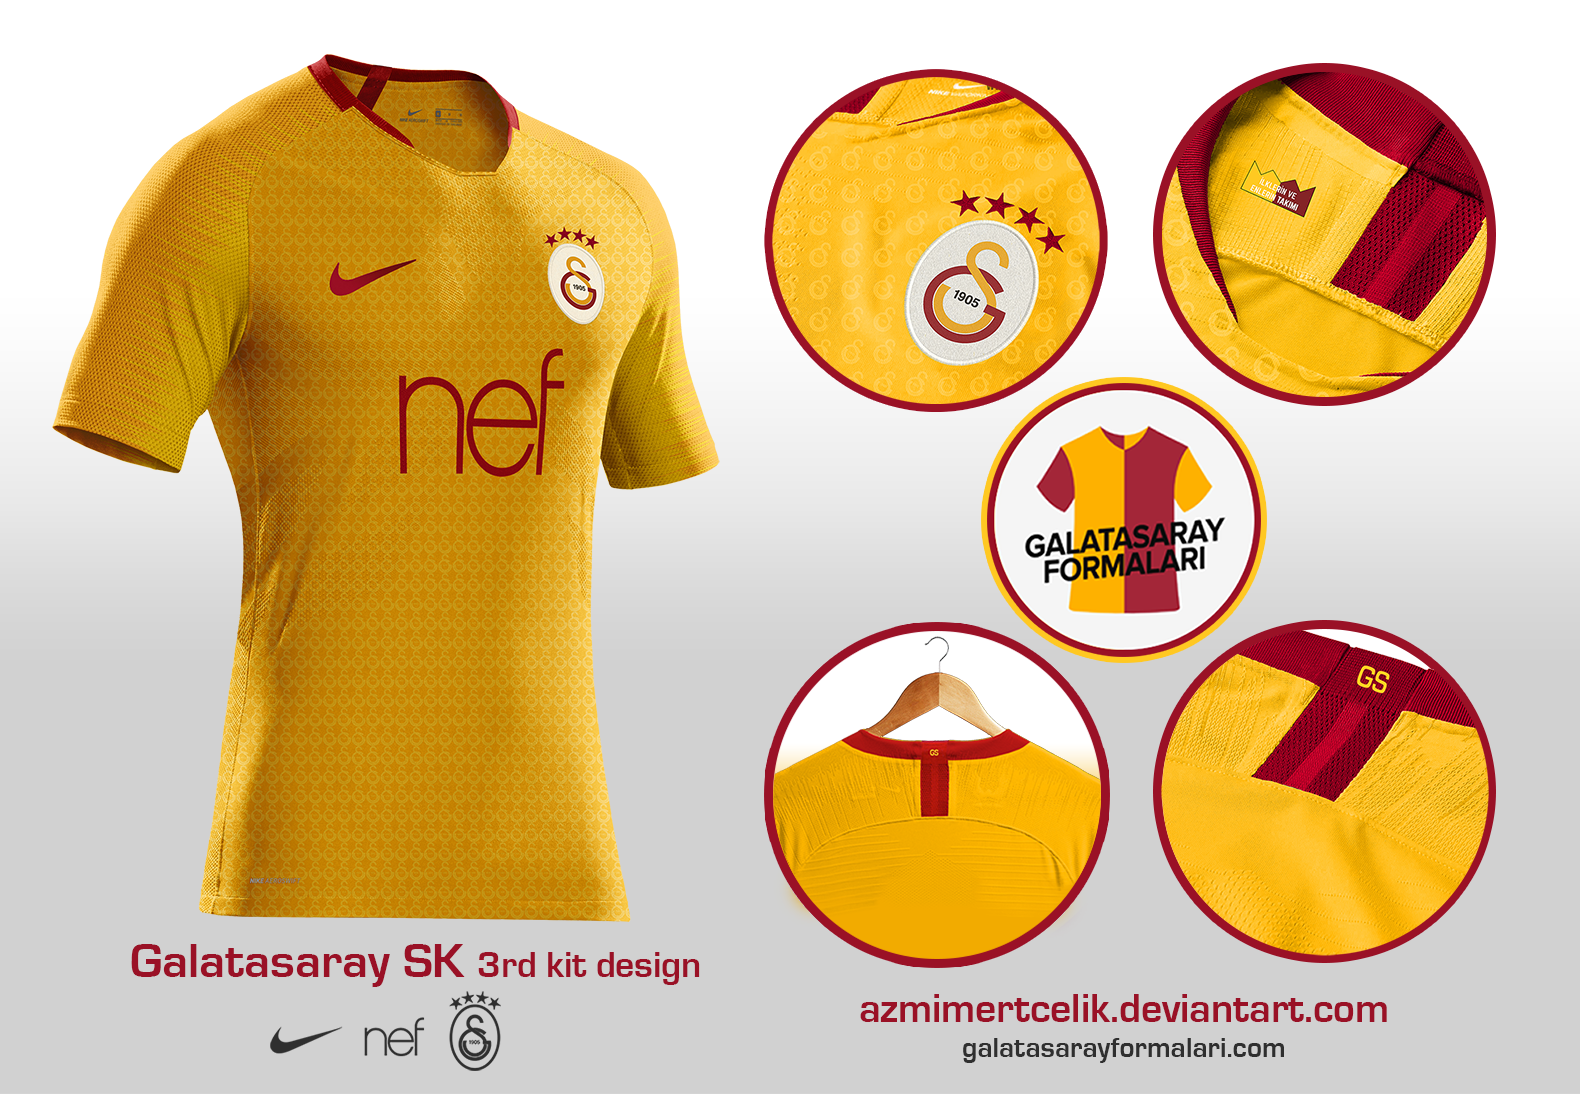 https://orig00.deviantart.net/572d/f/2018/086/c/b/galatasaray_18_19_yellow_3rd_kit_design_by_azmimertcelik-dc73qm6.png